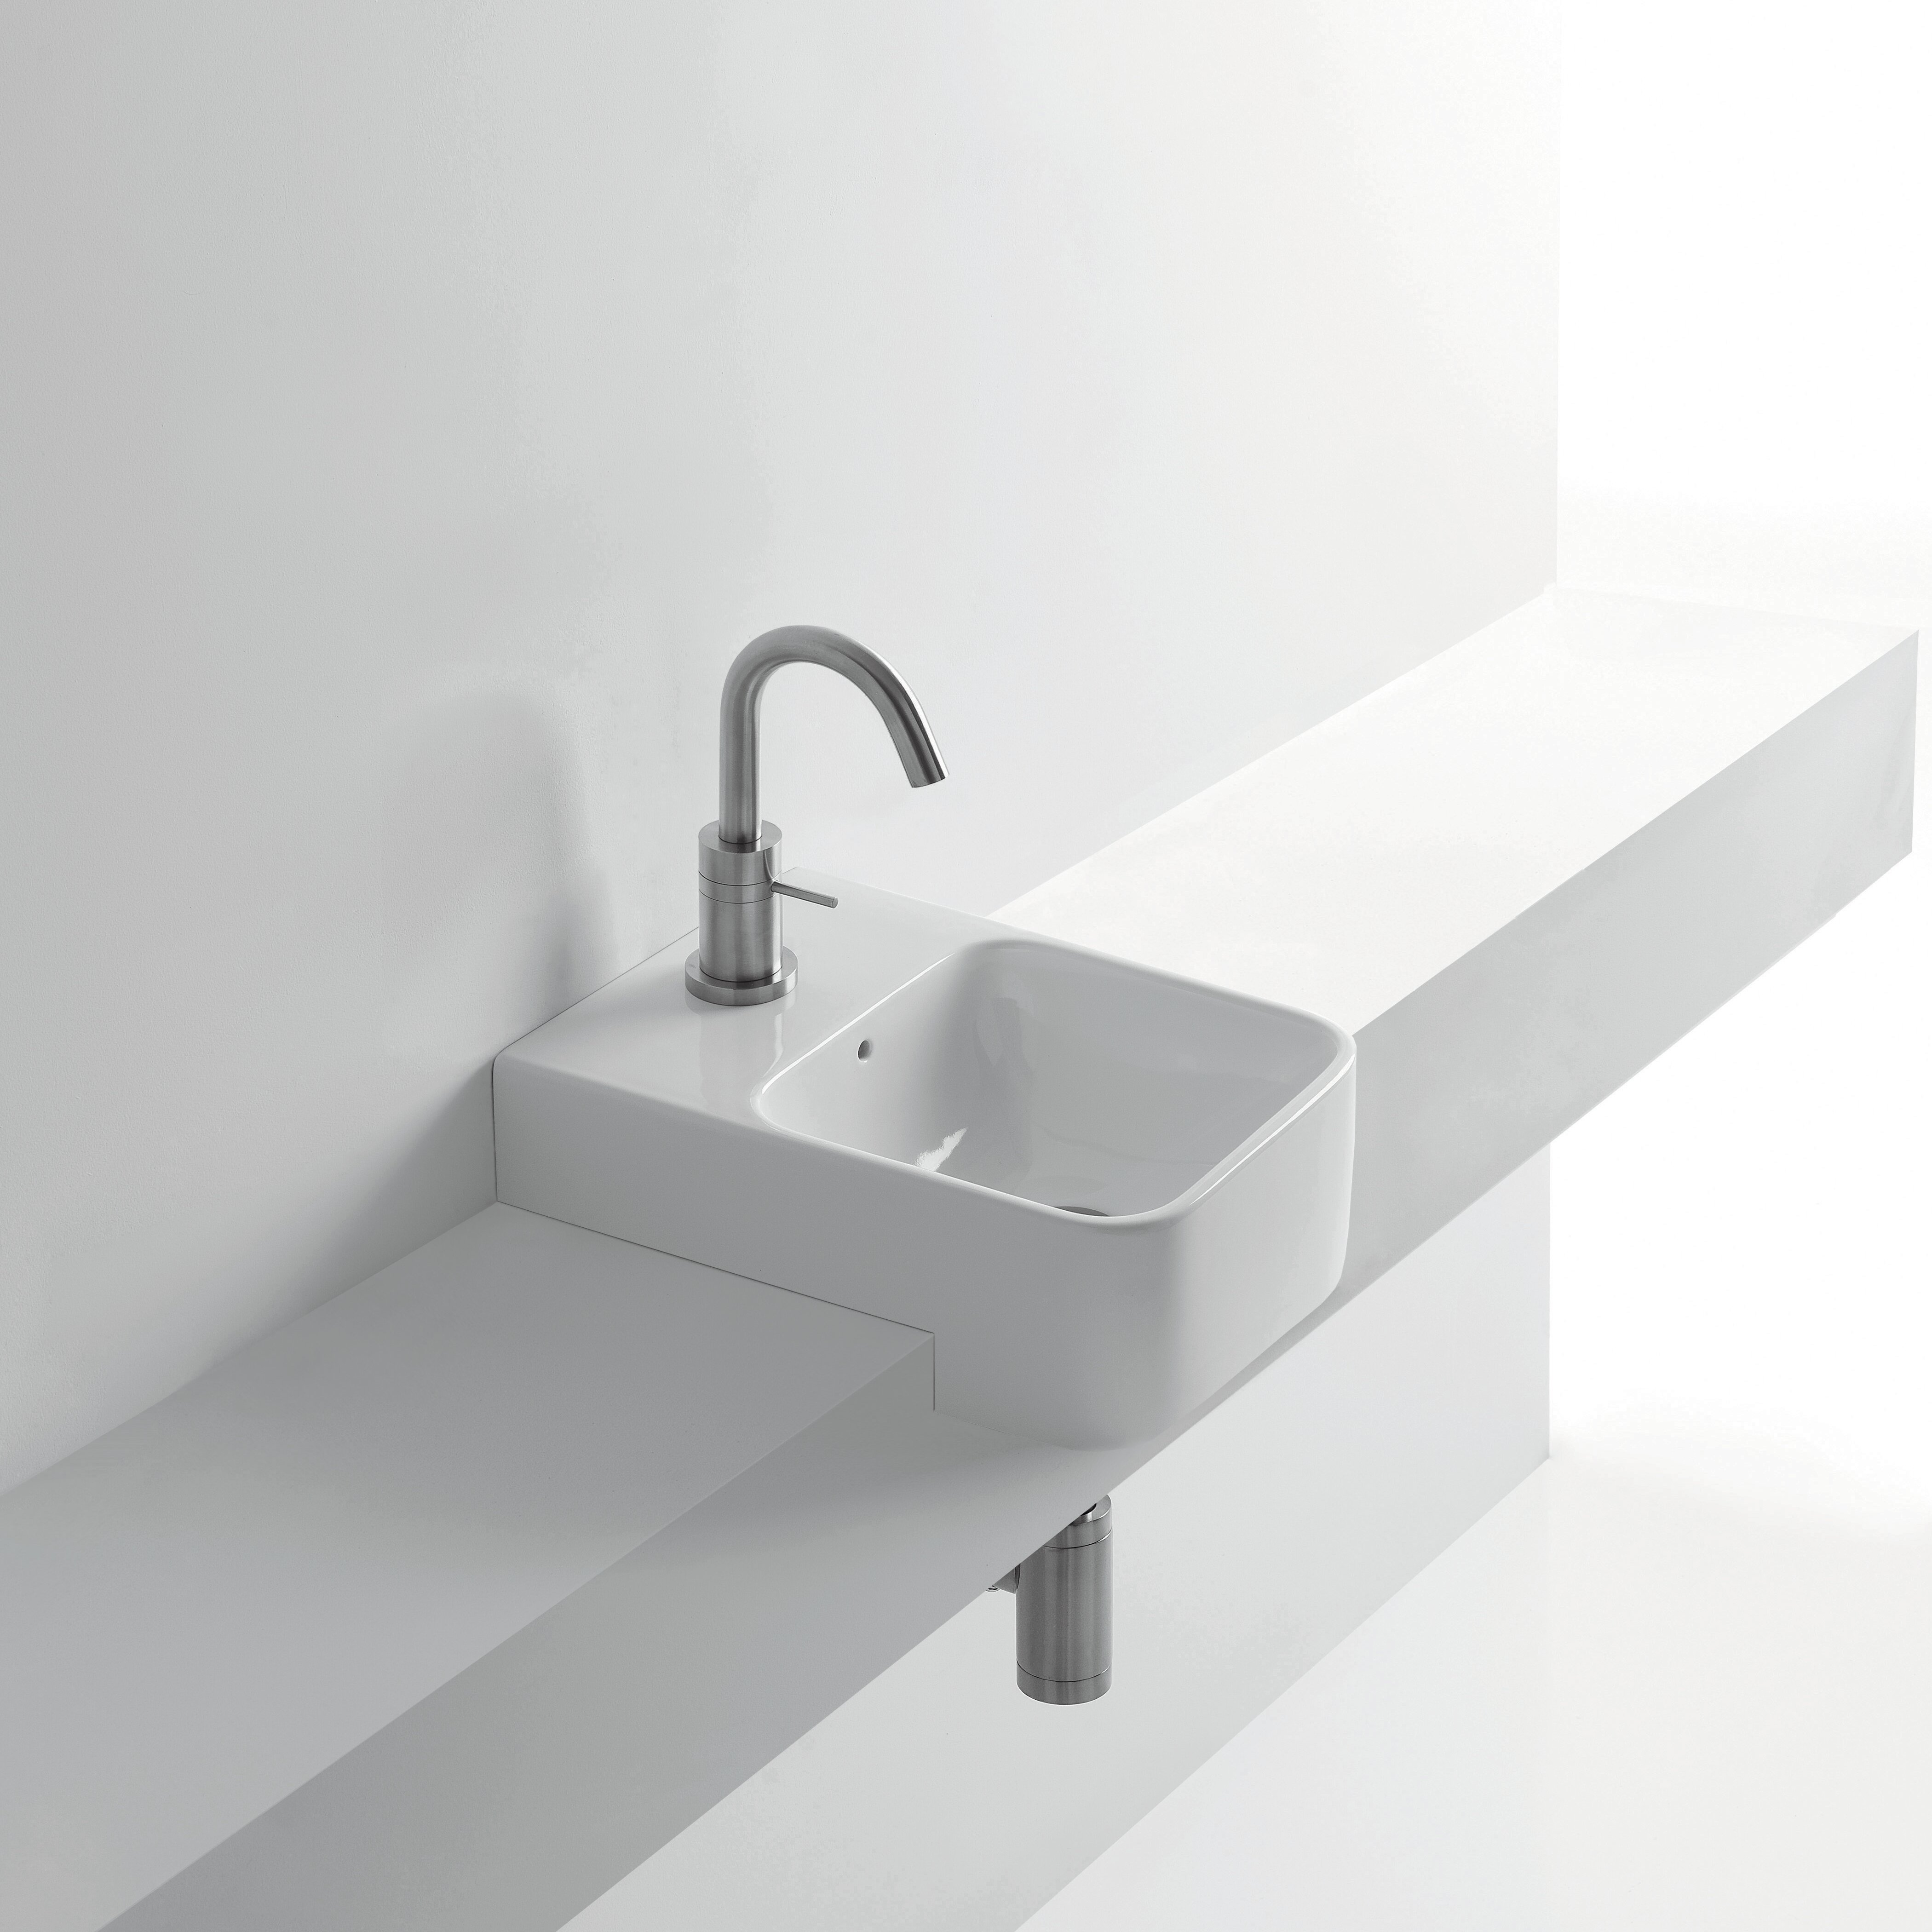 Recessed Bathroom Sink : Normal Semi-Recessed Bathroom Sink by WS Bath Collections